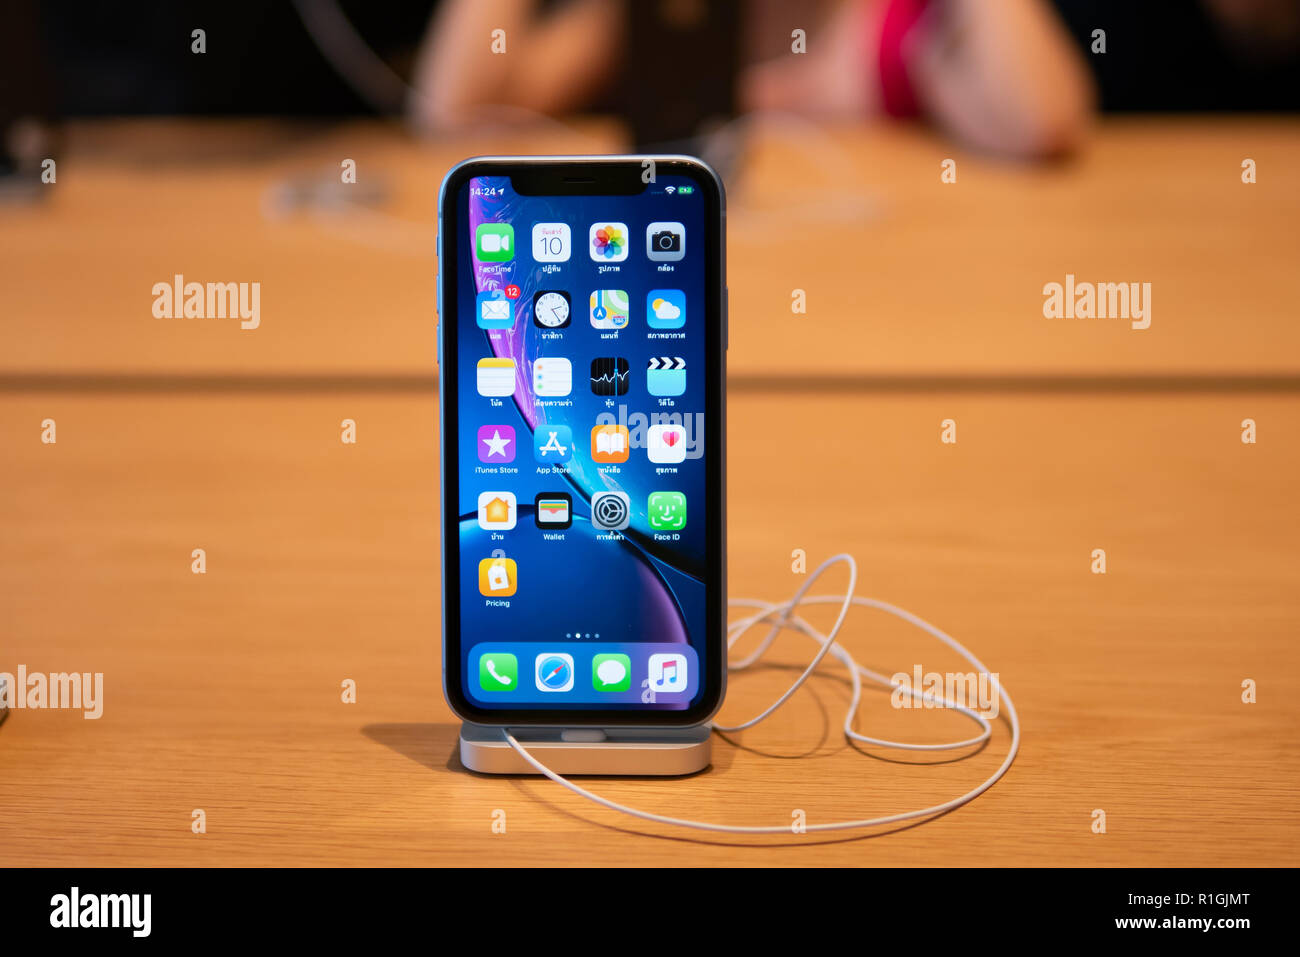 Bangkok, Thailand - November 10, 2018: Apple iPhone XR mounted on the stand at the Apple store. - Stock Image